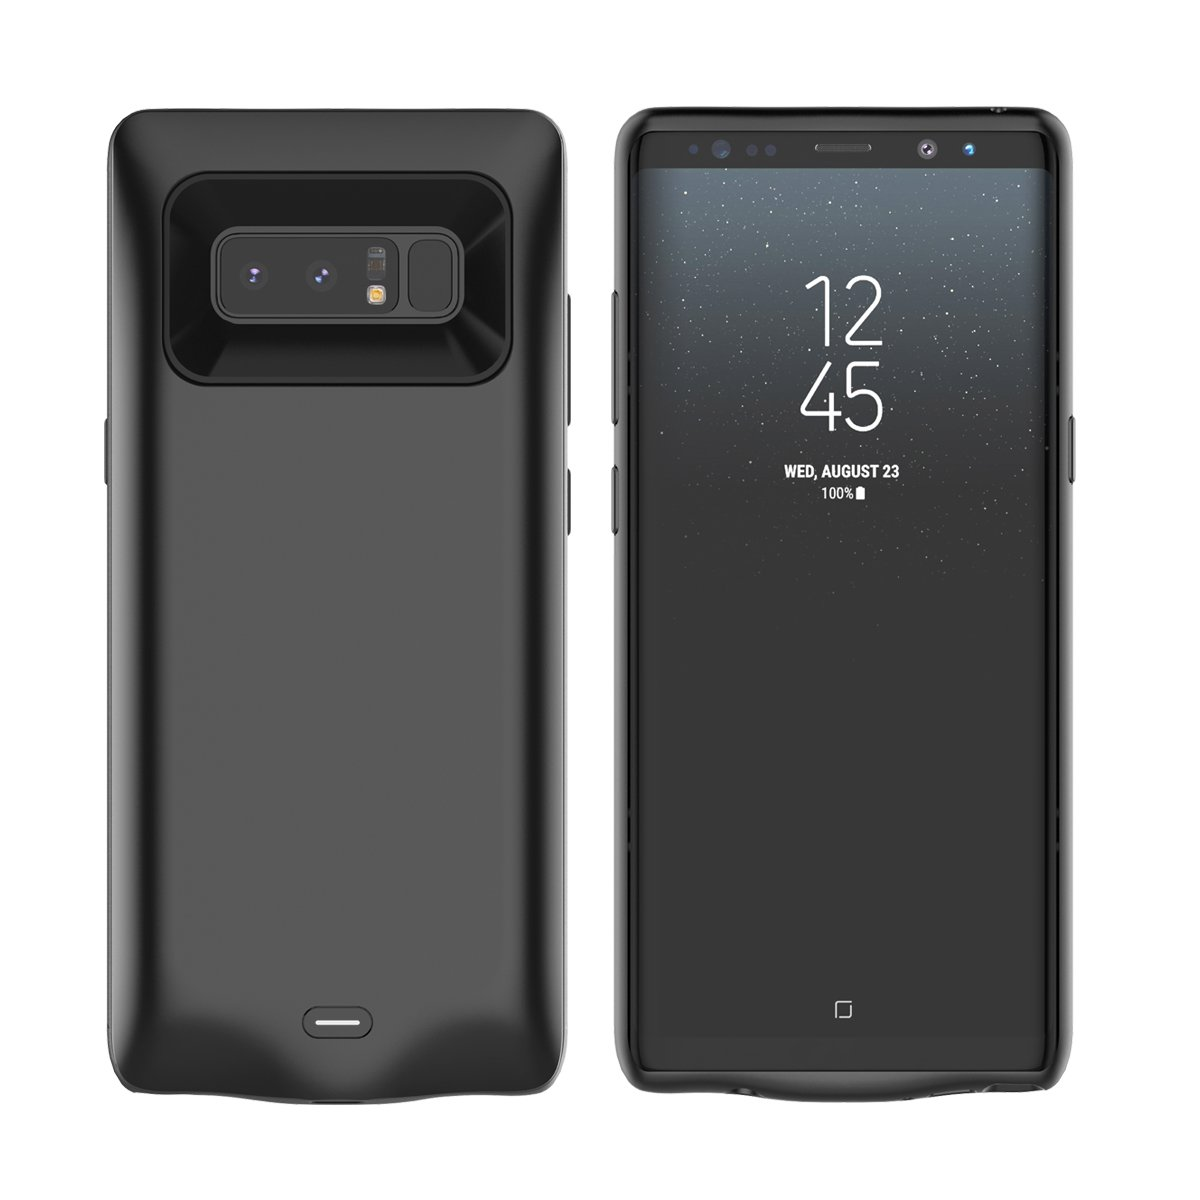 Scheam Samsung Galaxy Note 8 Battery Battery Case- Carry Case Protective Portable Rechargeable Charging Case for Samsung Galaxy Note 8 Battery Bank Power Pack -Black